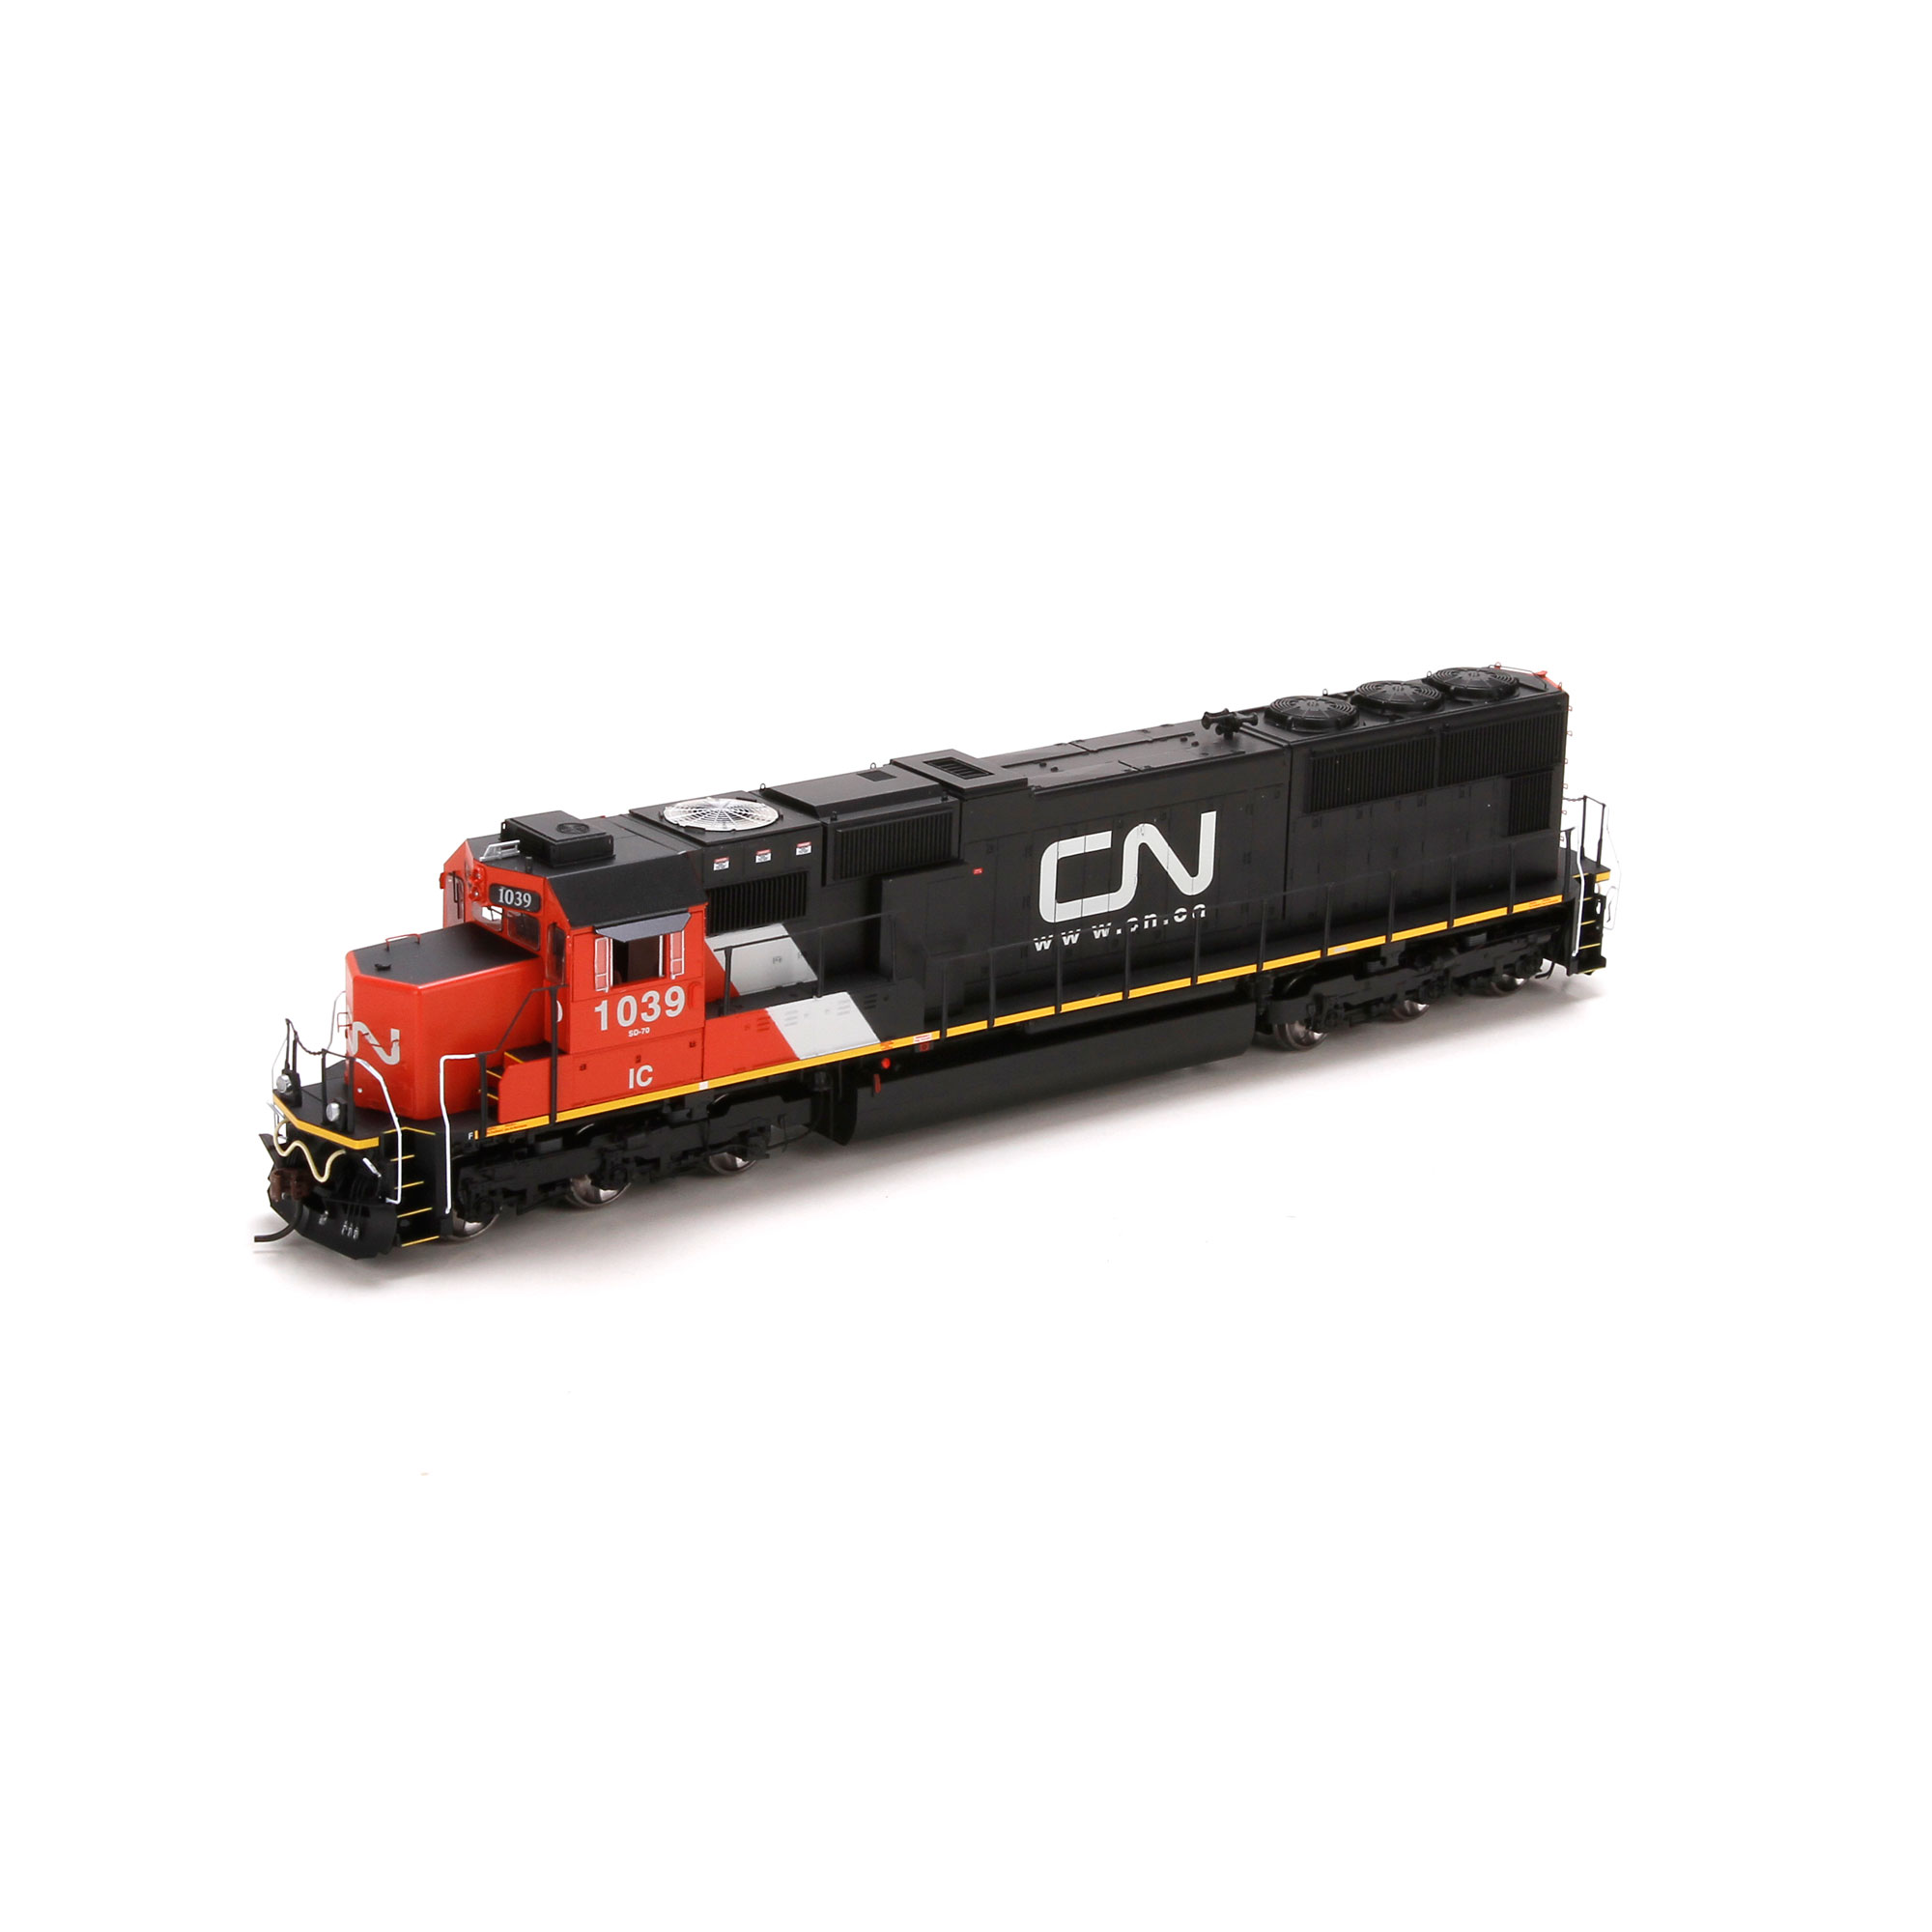 HO SD70I w/DCC & Sound, CN #1039